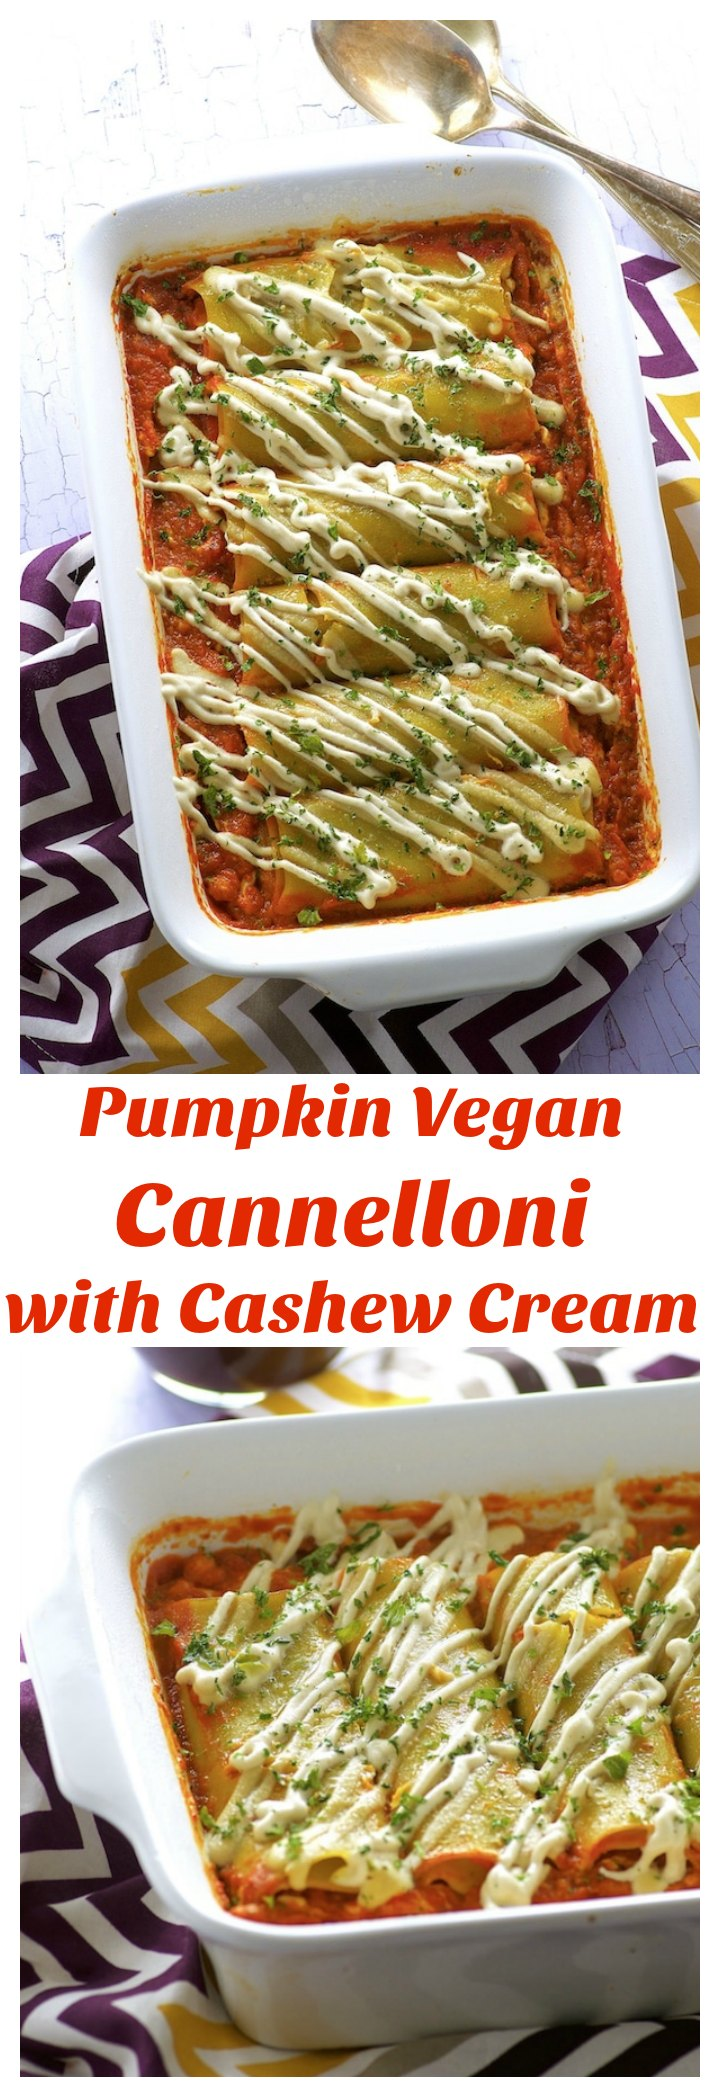 These Pumpkin Vegan Cannelloni with Cashew Cream make a super satisfying meatless dish to add to your Thanksgiving table!